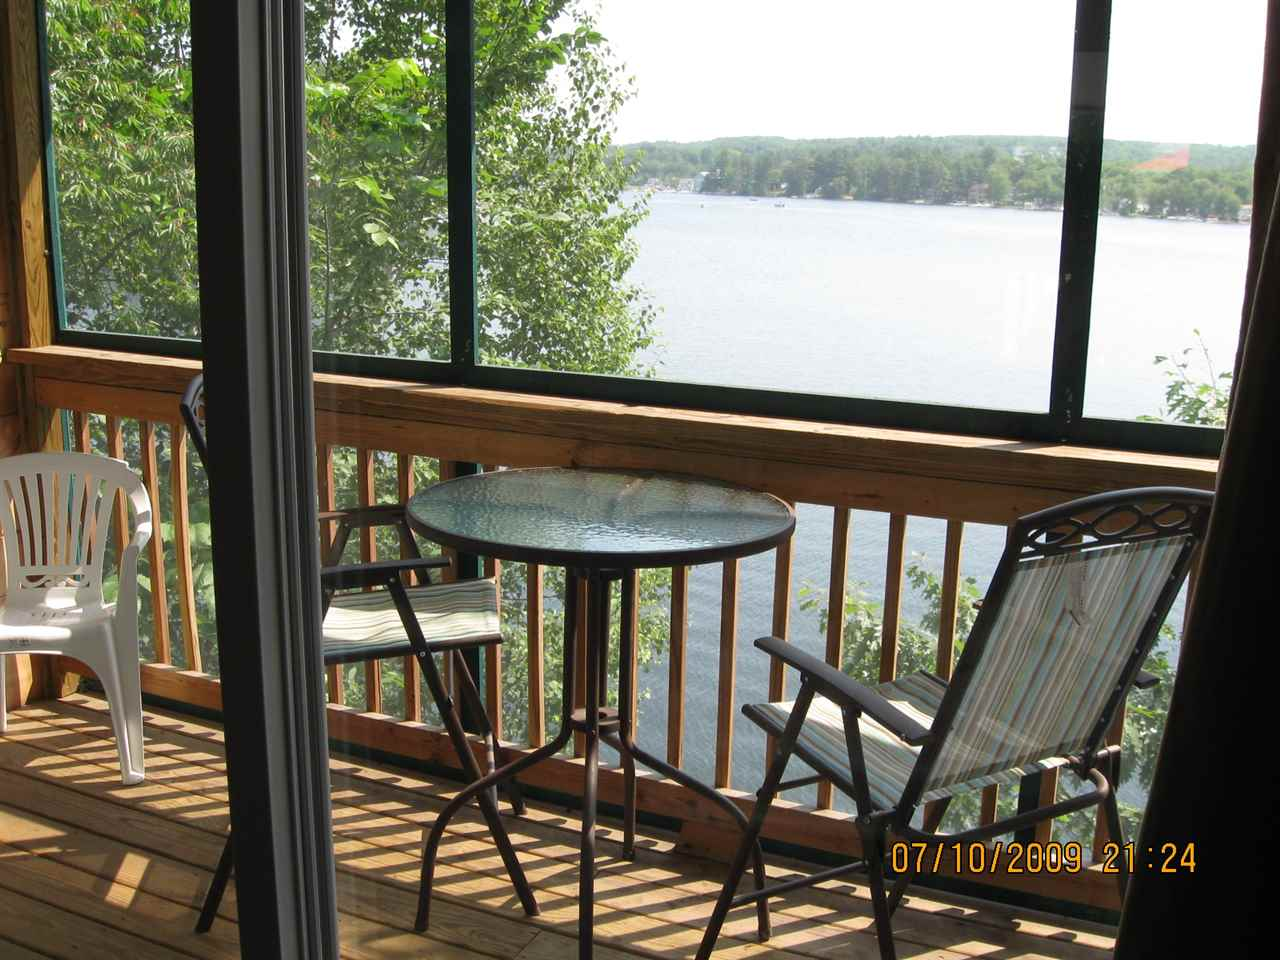 VILLAGE OF WINNISQUAM IN TOWN OF TILTON NH Condo for sale $129,900